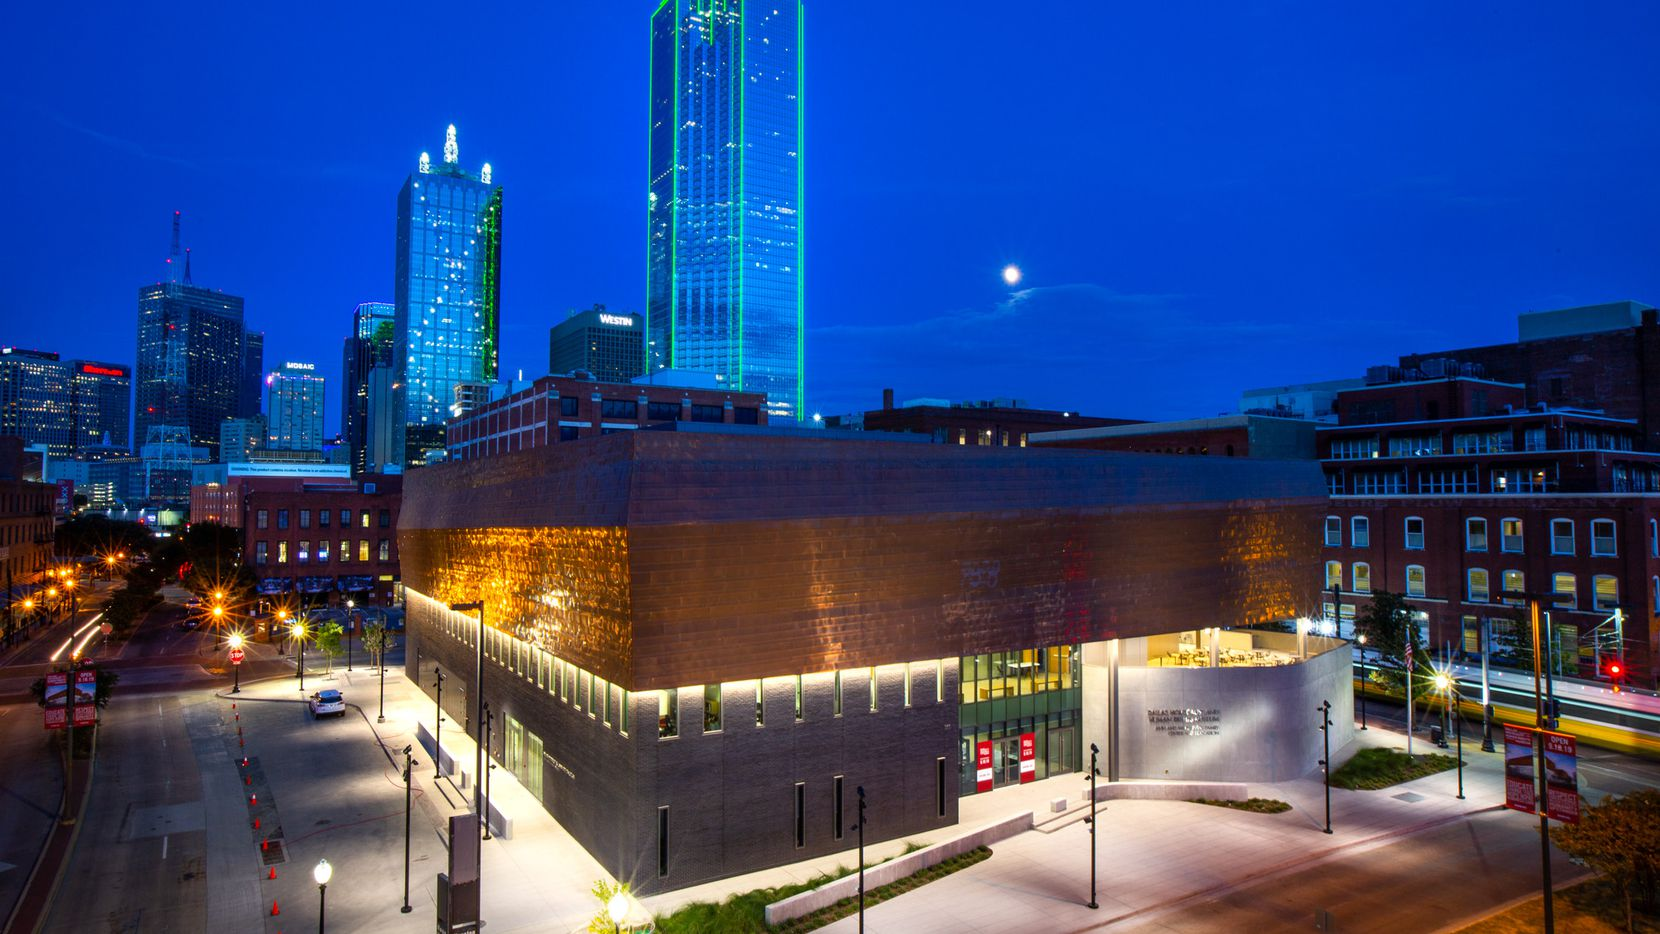 This Sept. 11, 2019 file photo shows the then-new Dallas Holocaust and Human Rights Museum.